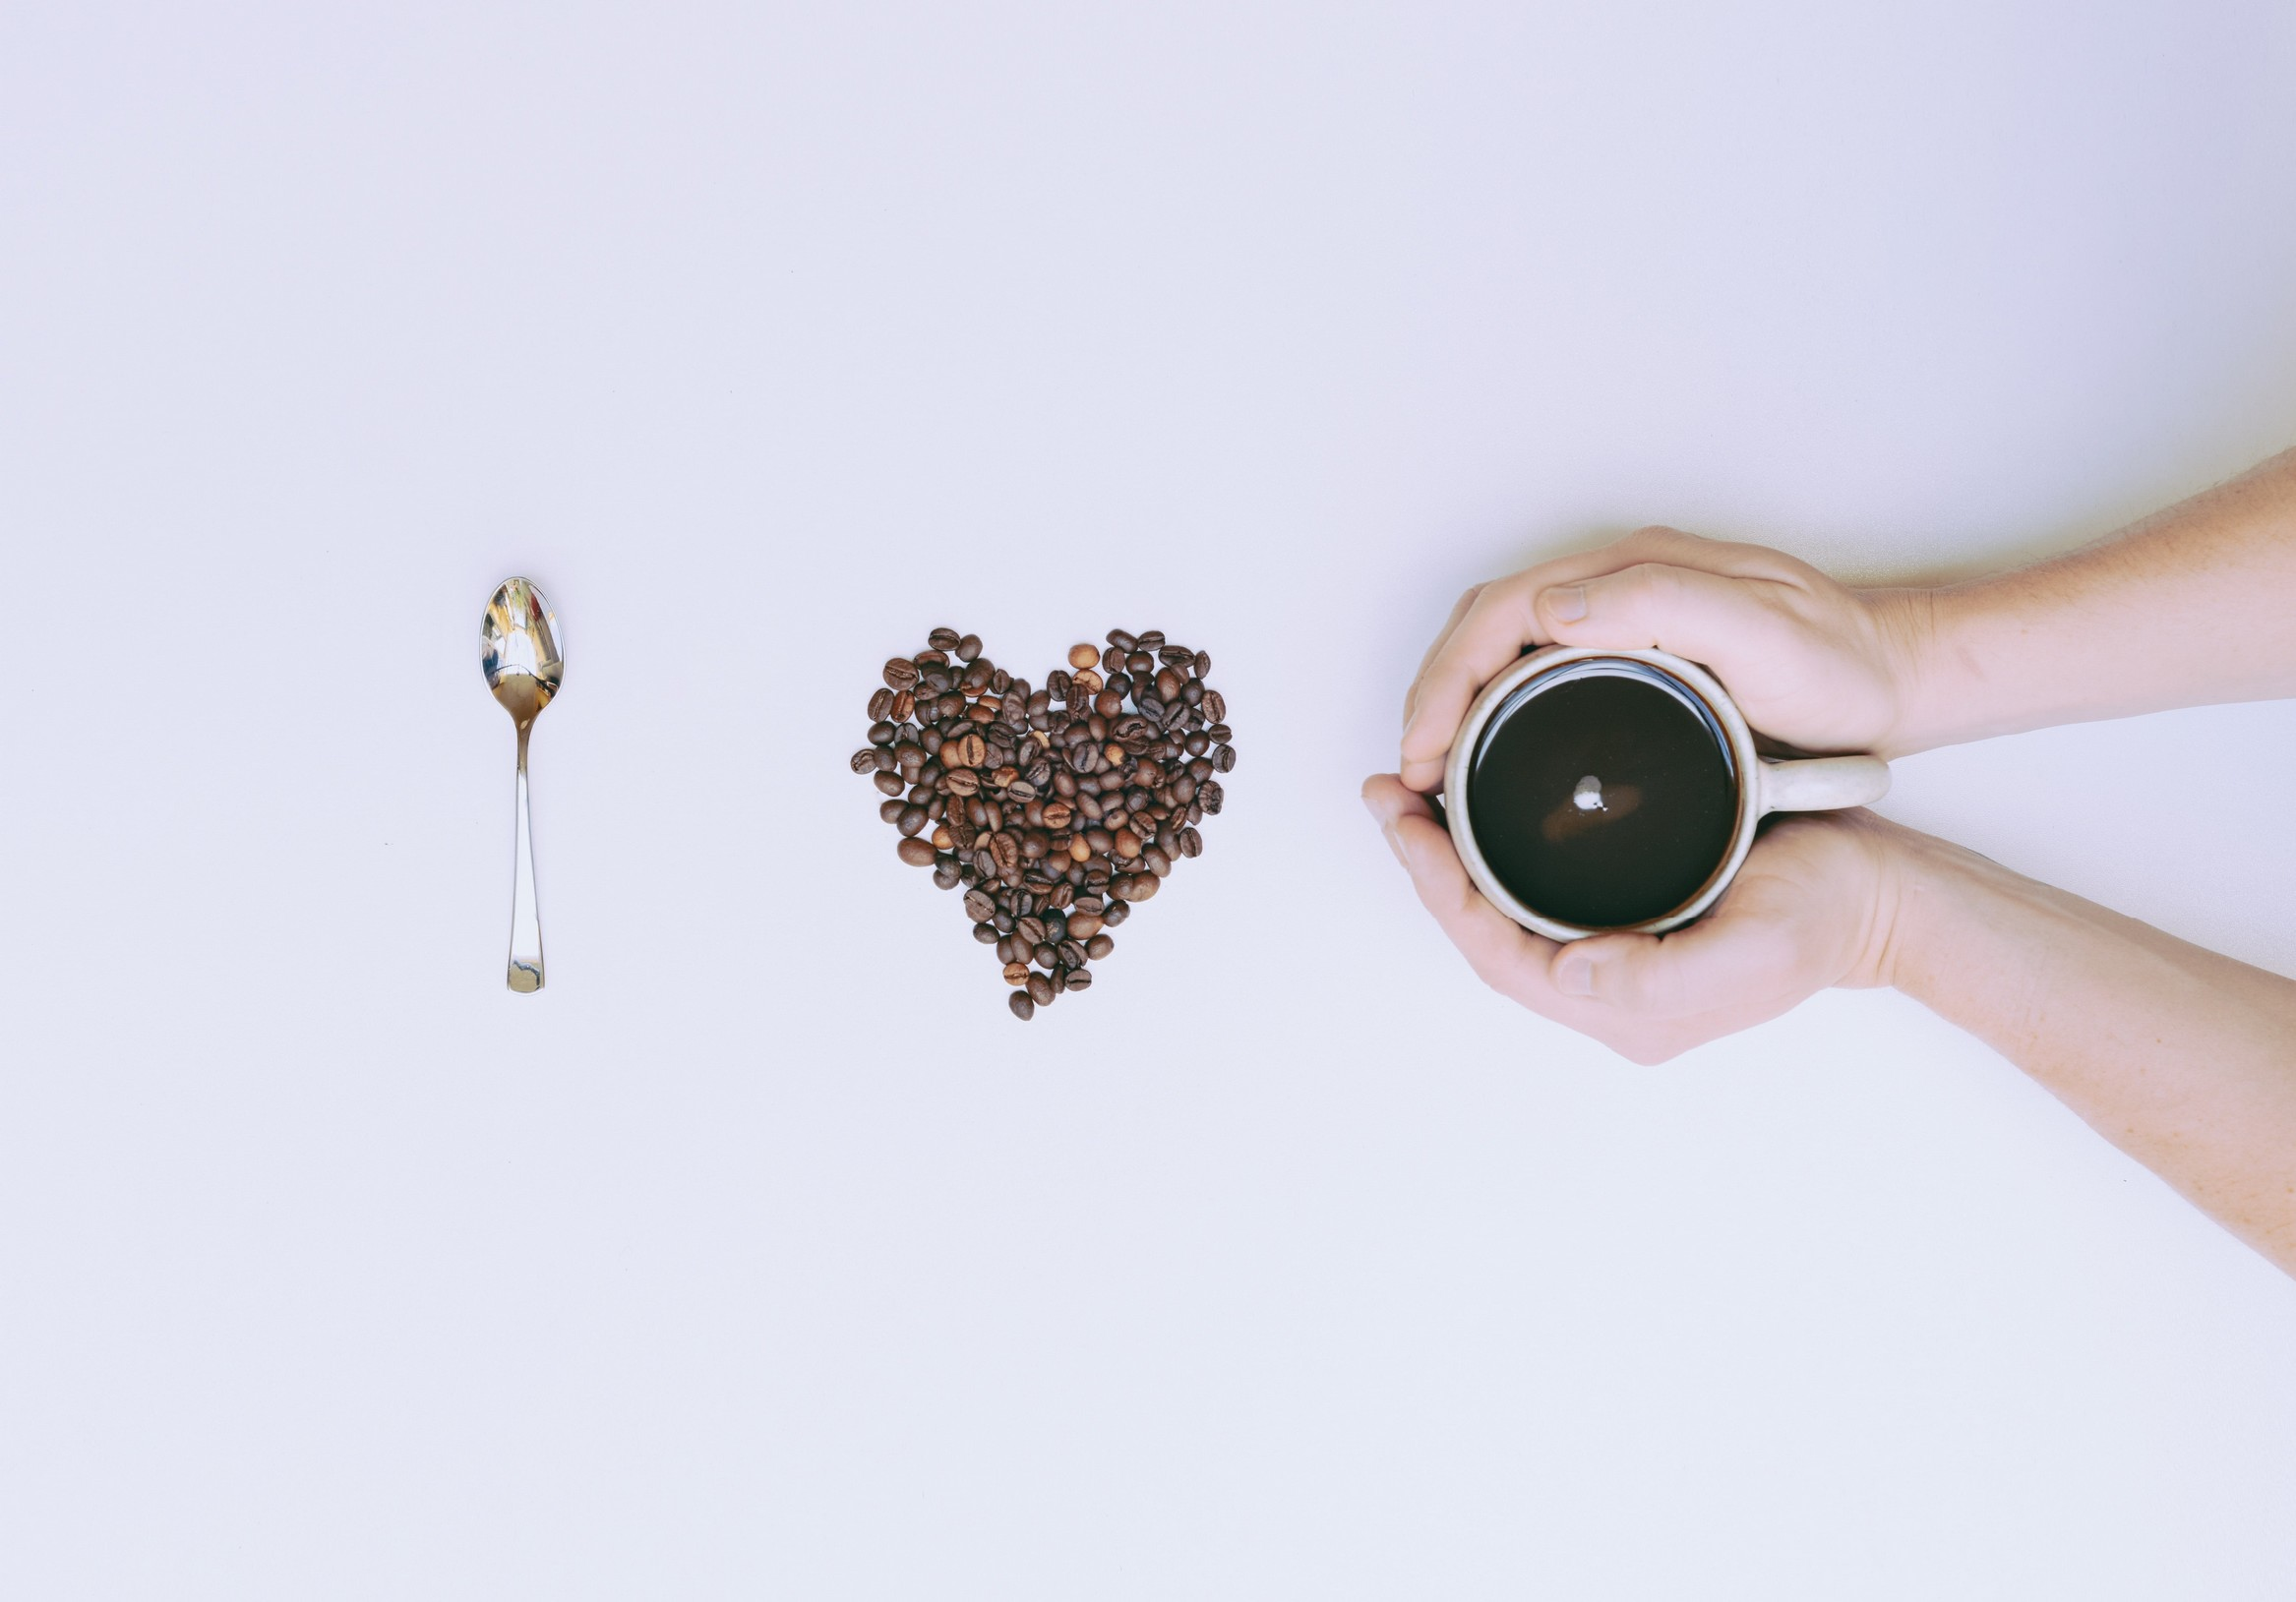 a single teaspoon, a heartshape filled with coffee beans and two hands holding a mug of black coffee - translating I heart coffee.